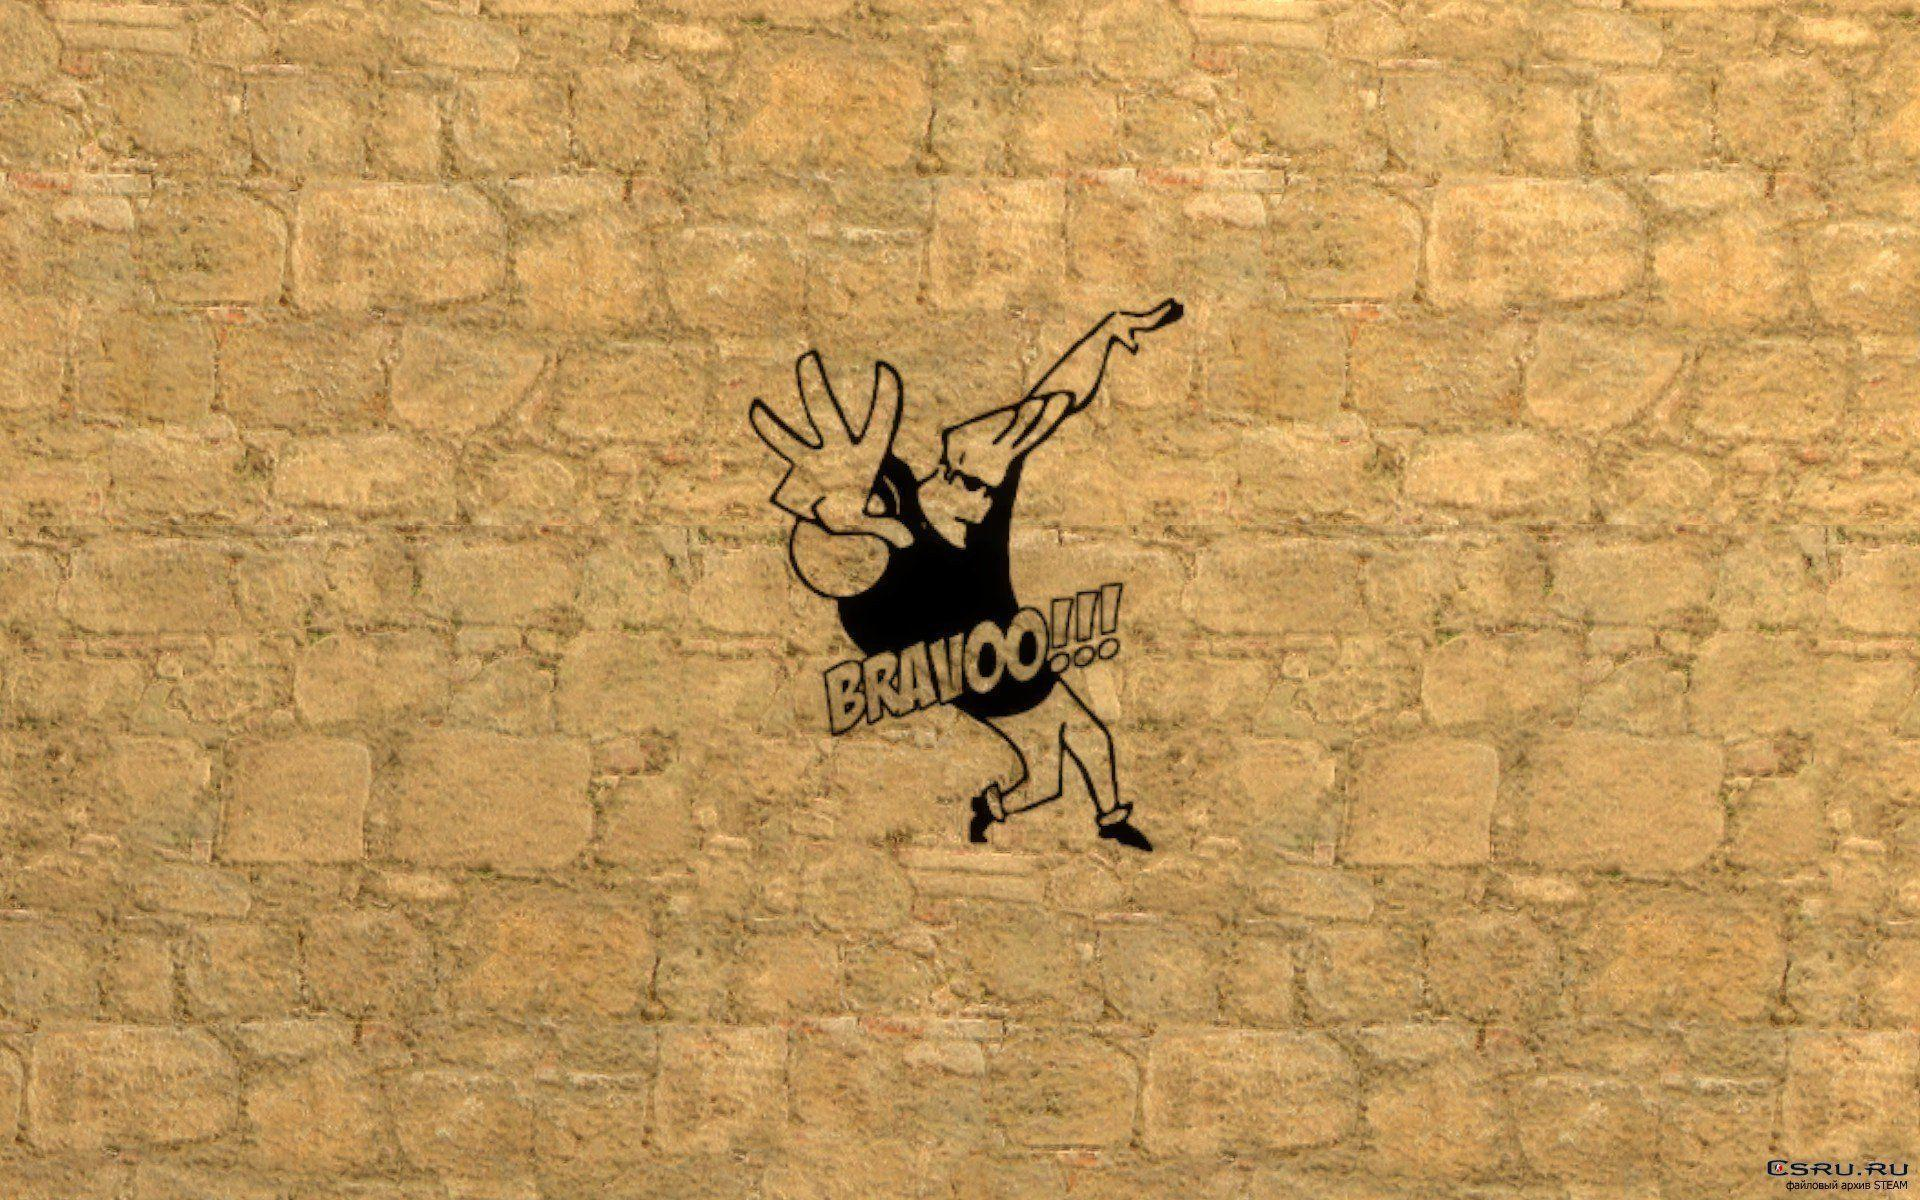 Johnny Bravo on the wall wallpaper | Cartoons HD Wallpapers and ...